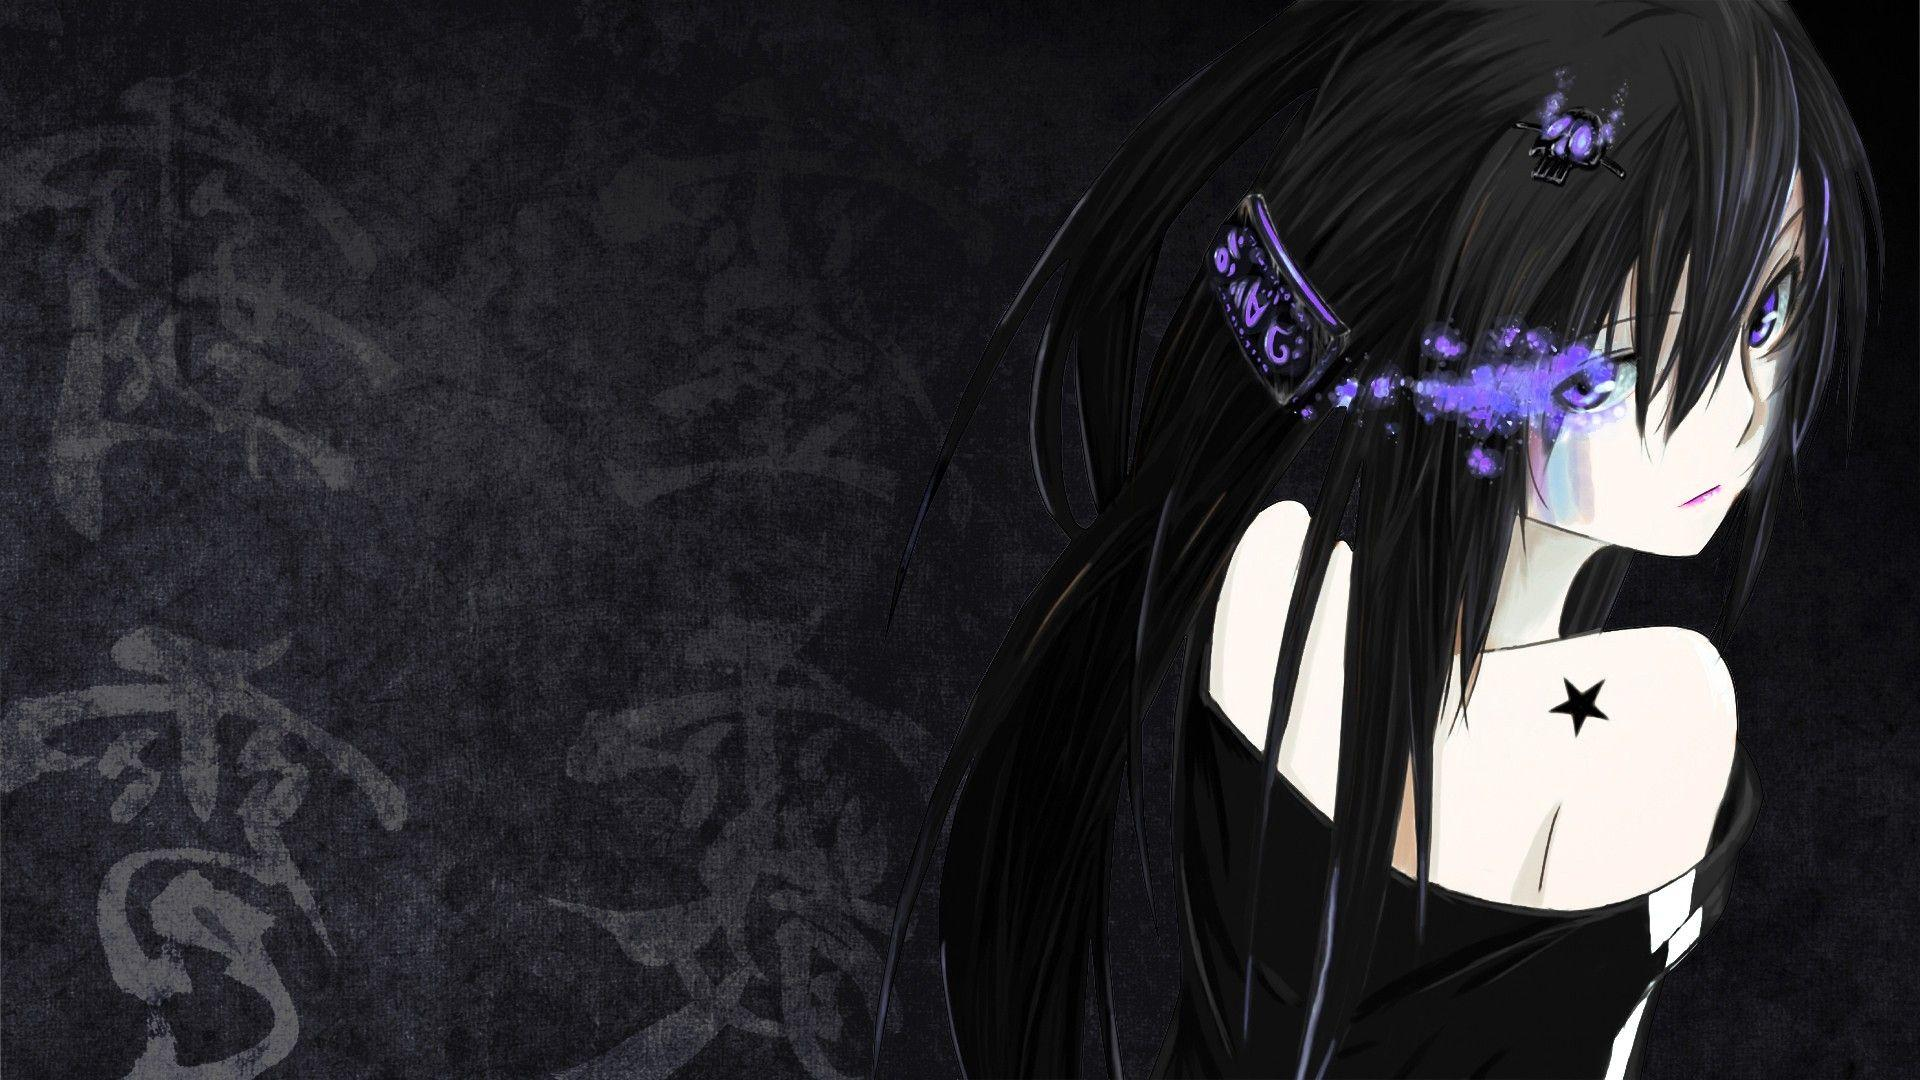 Unique 1920x1080 dark anime girl wallpapers gallery anime wallpaper hd